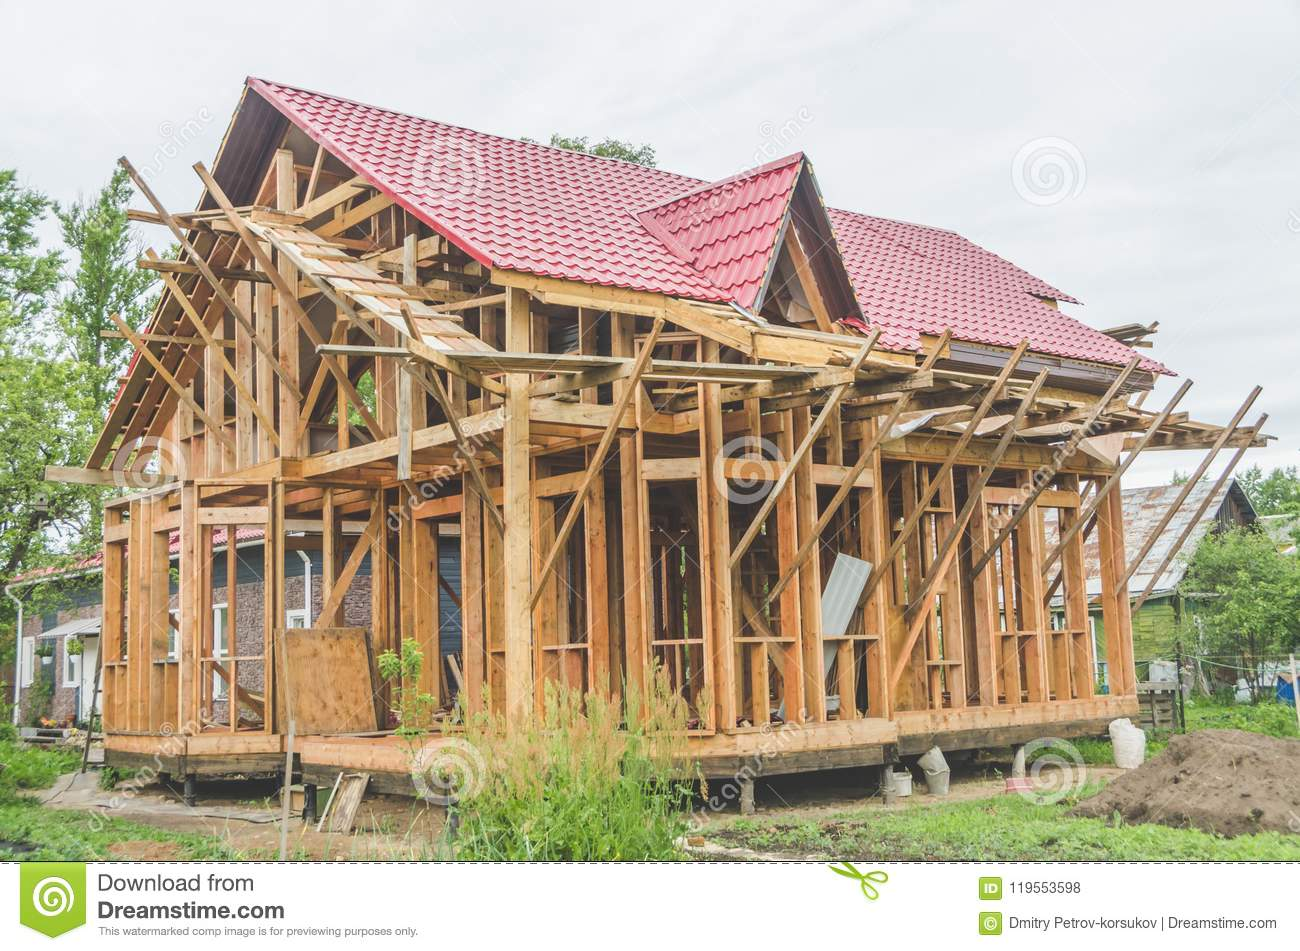 Construction of a frame house, metal roof